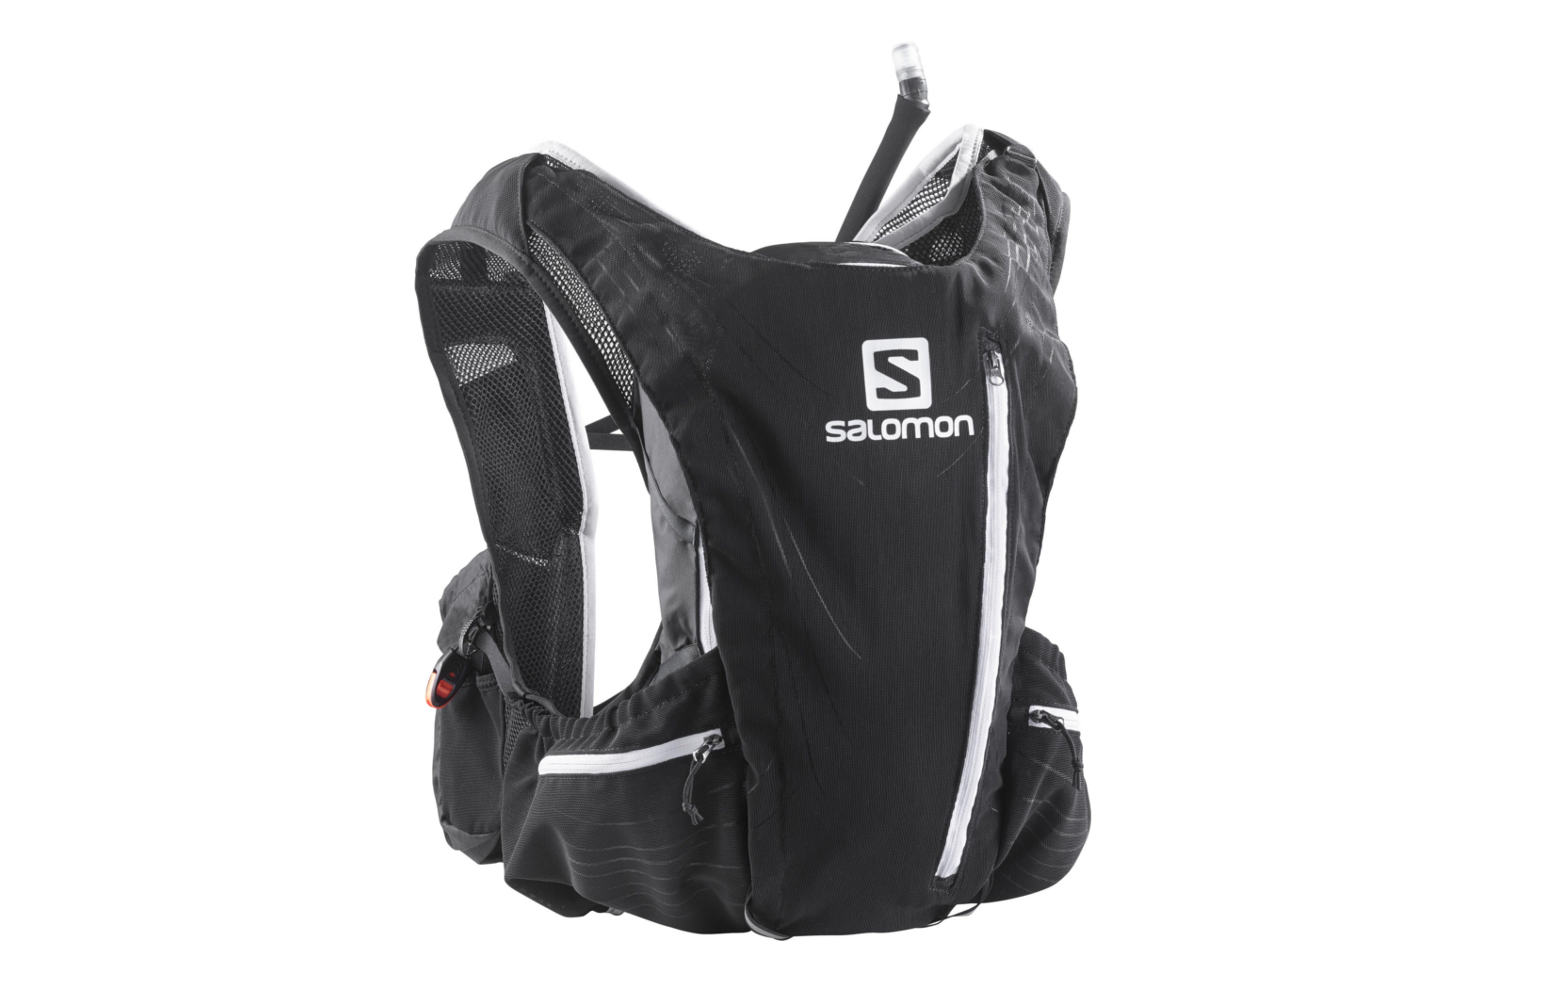 98ab35319 SALOMON ADVANCED SKIN 12 Set Bag Black | Alltricks.com